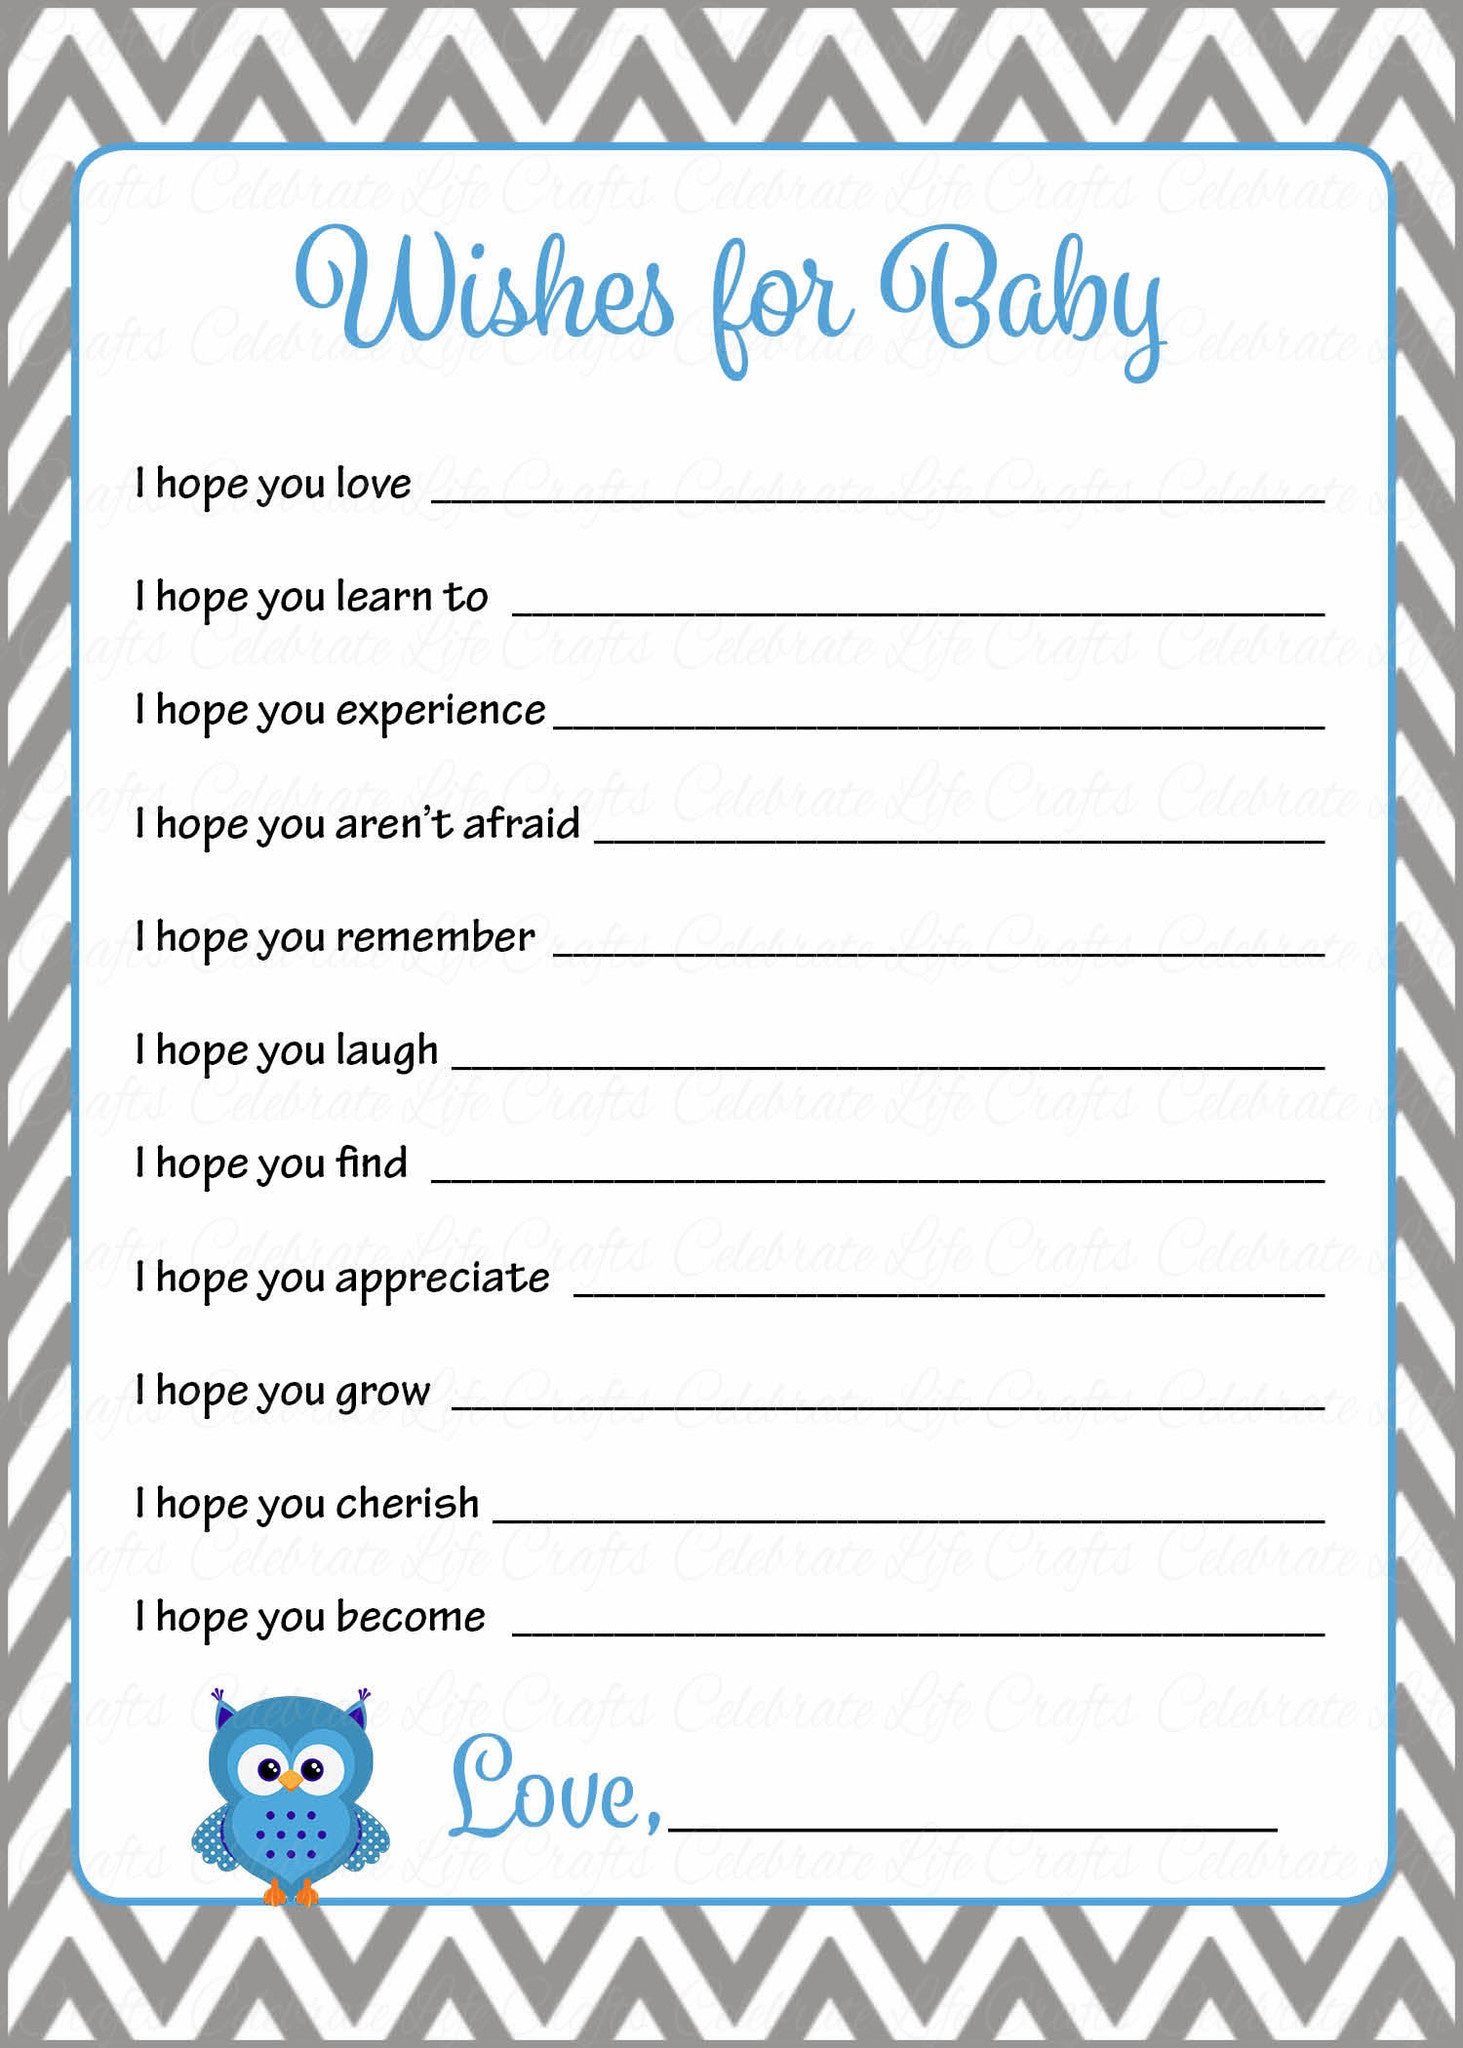 Wishes for baby shower activity owl baby shower theme for Wishes for baby template printable